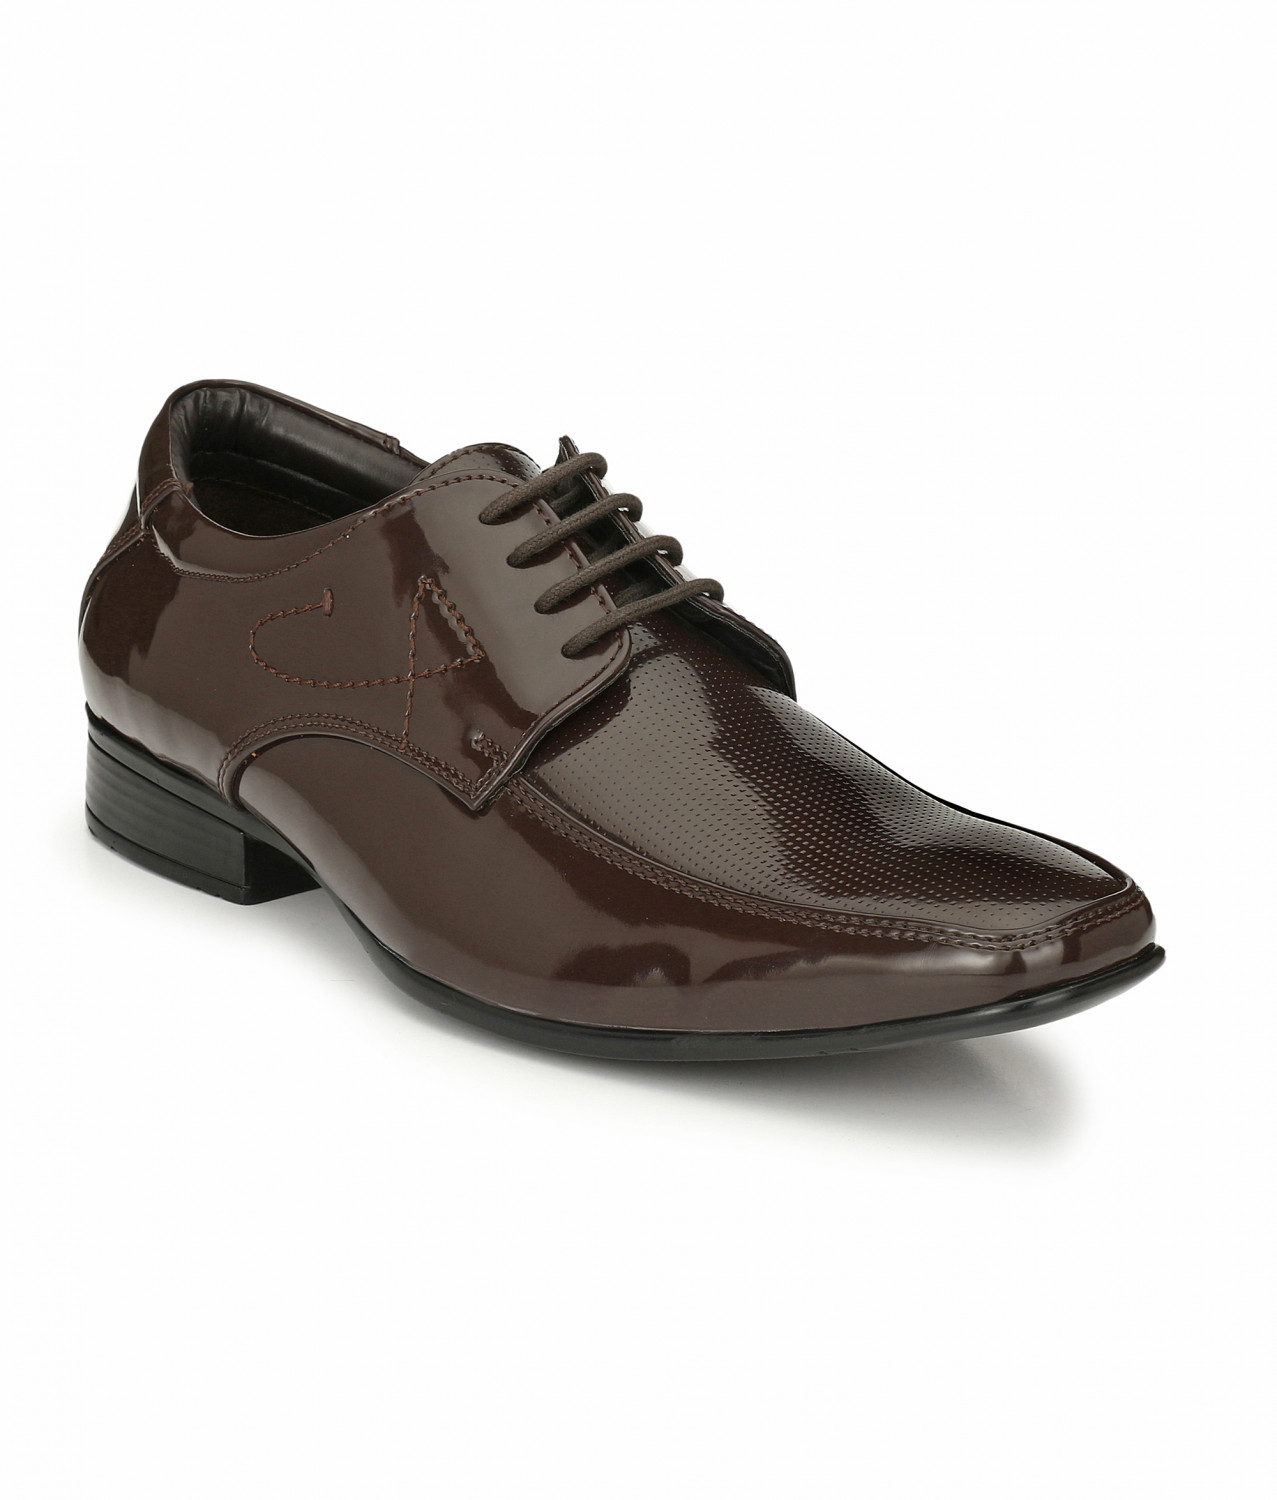 The Most Confort Shoes For Men